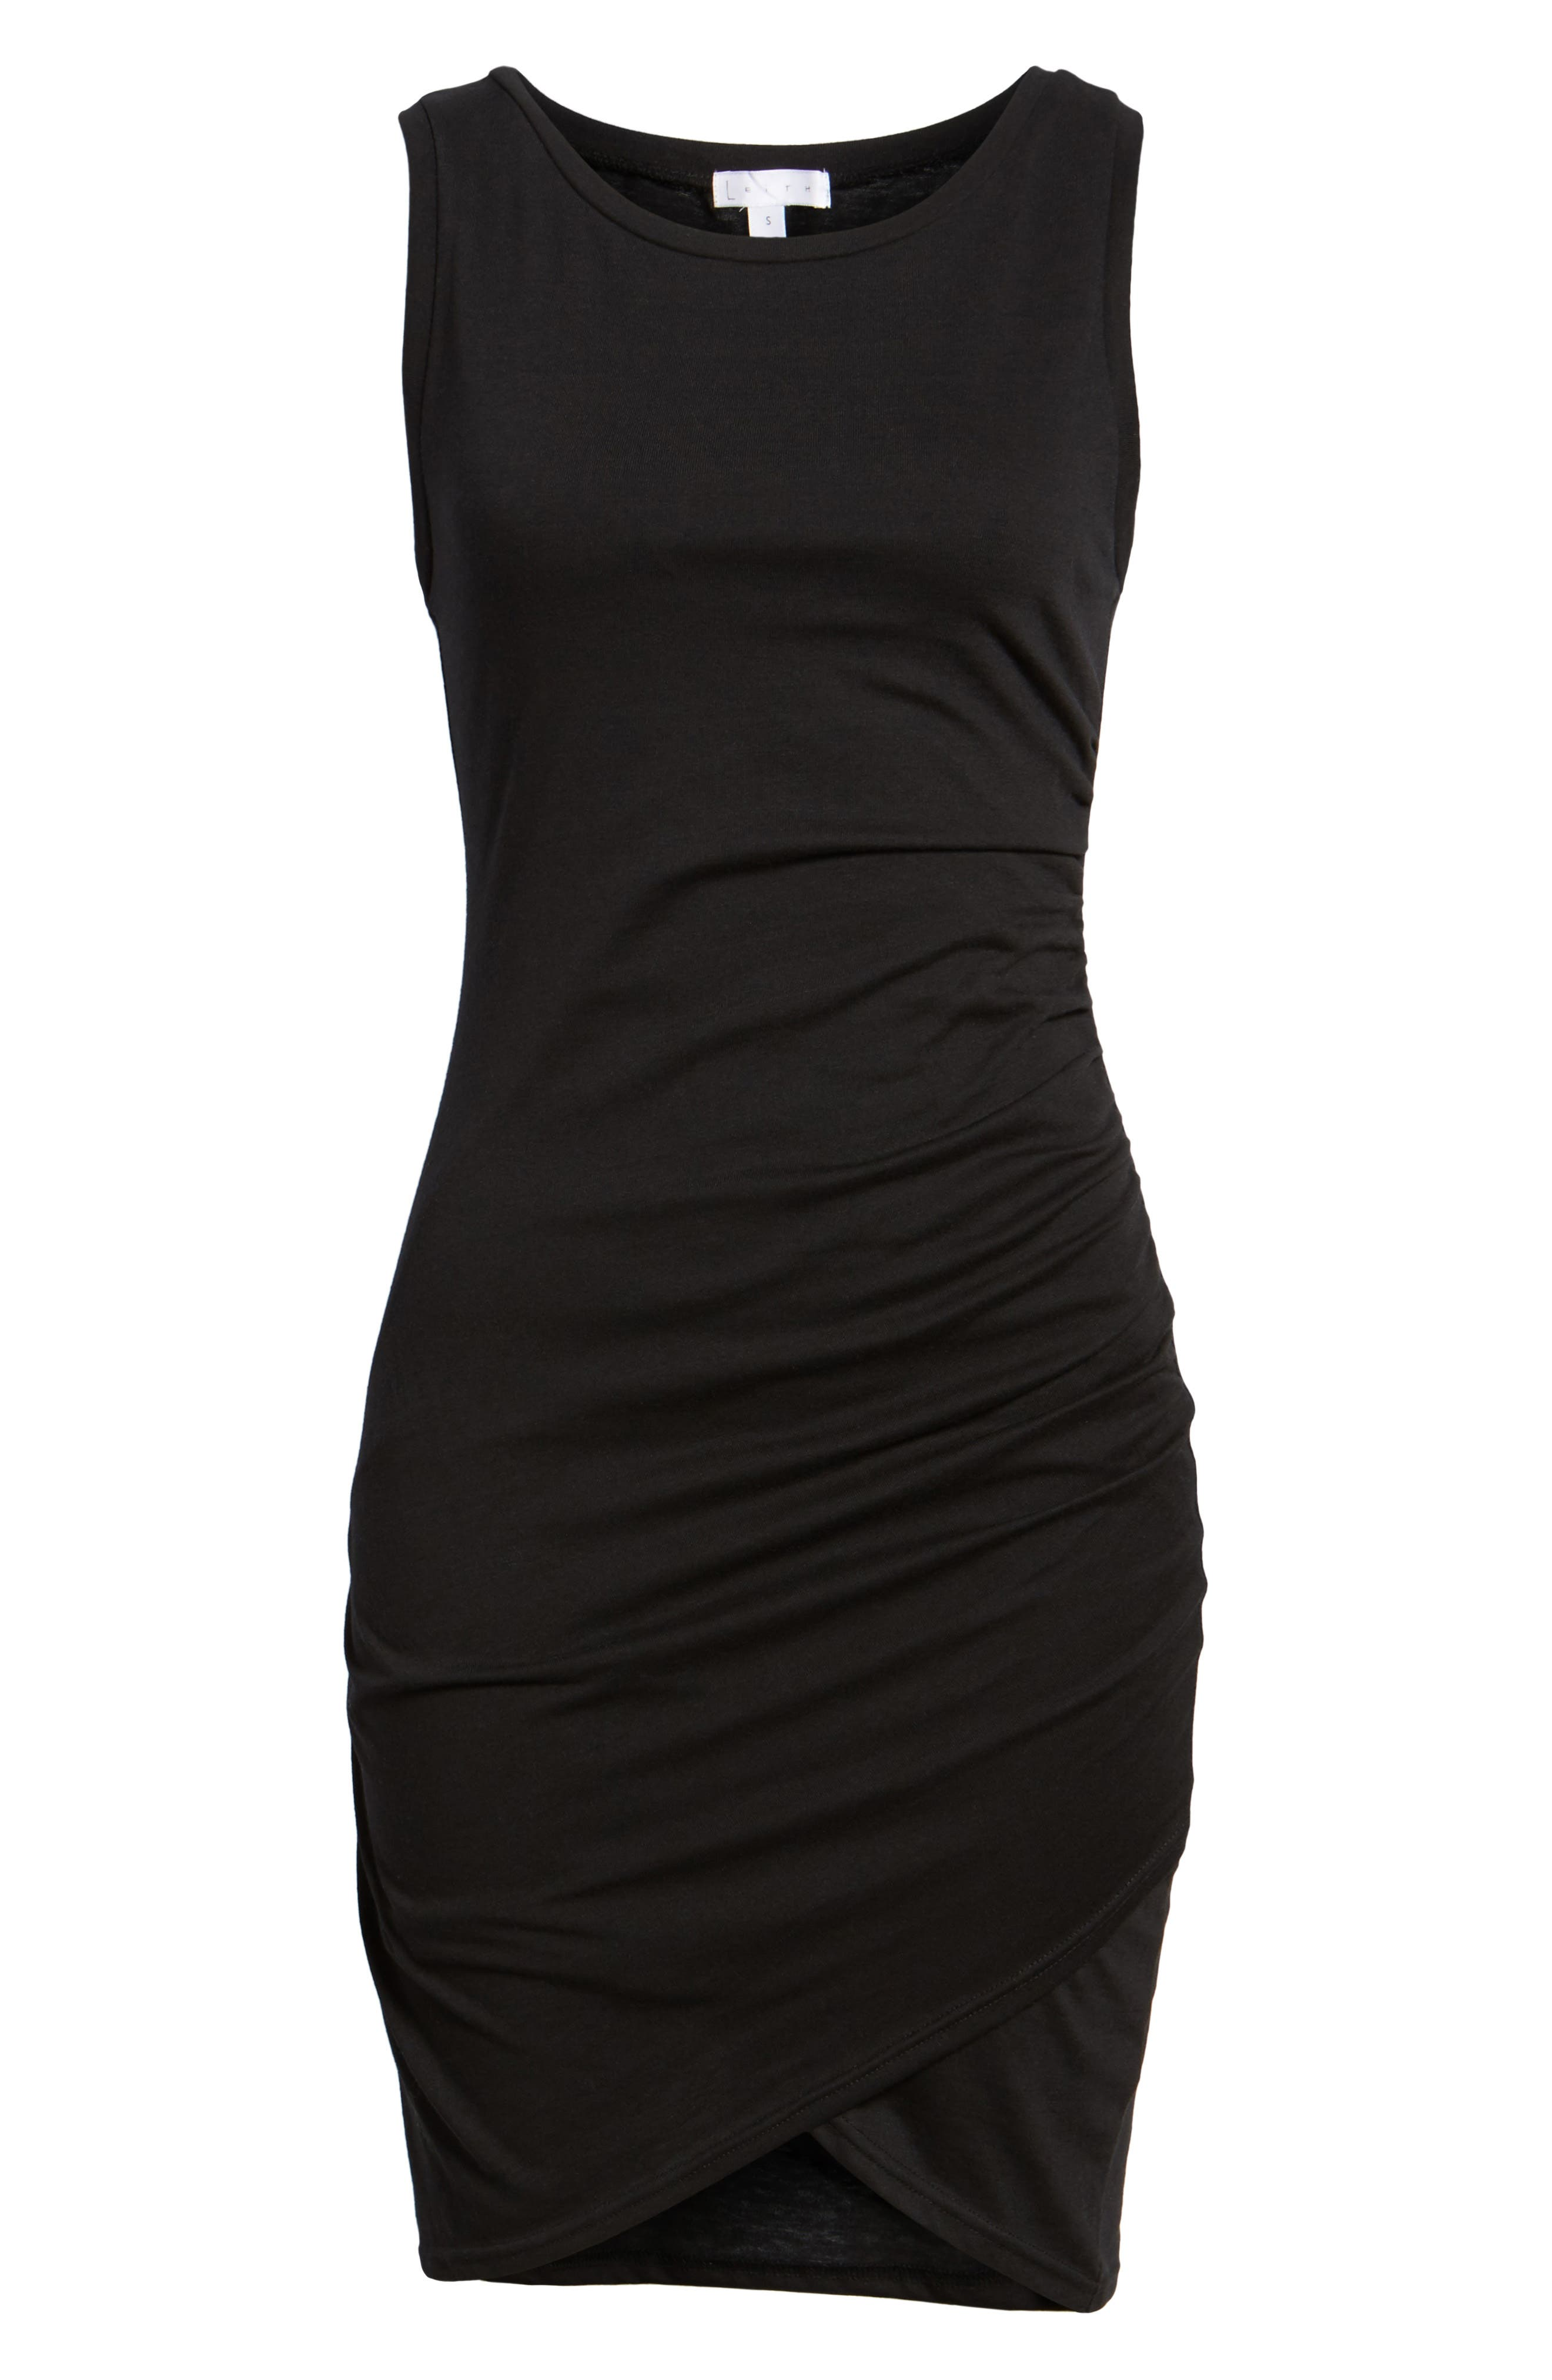 LEITH, Ruched Body-Con Tank Dress, Alternate thumbnail 7, color, BLACK